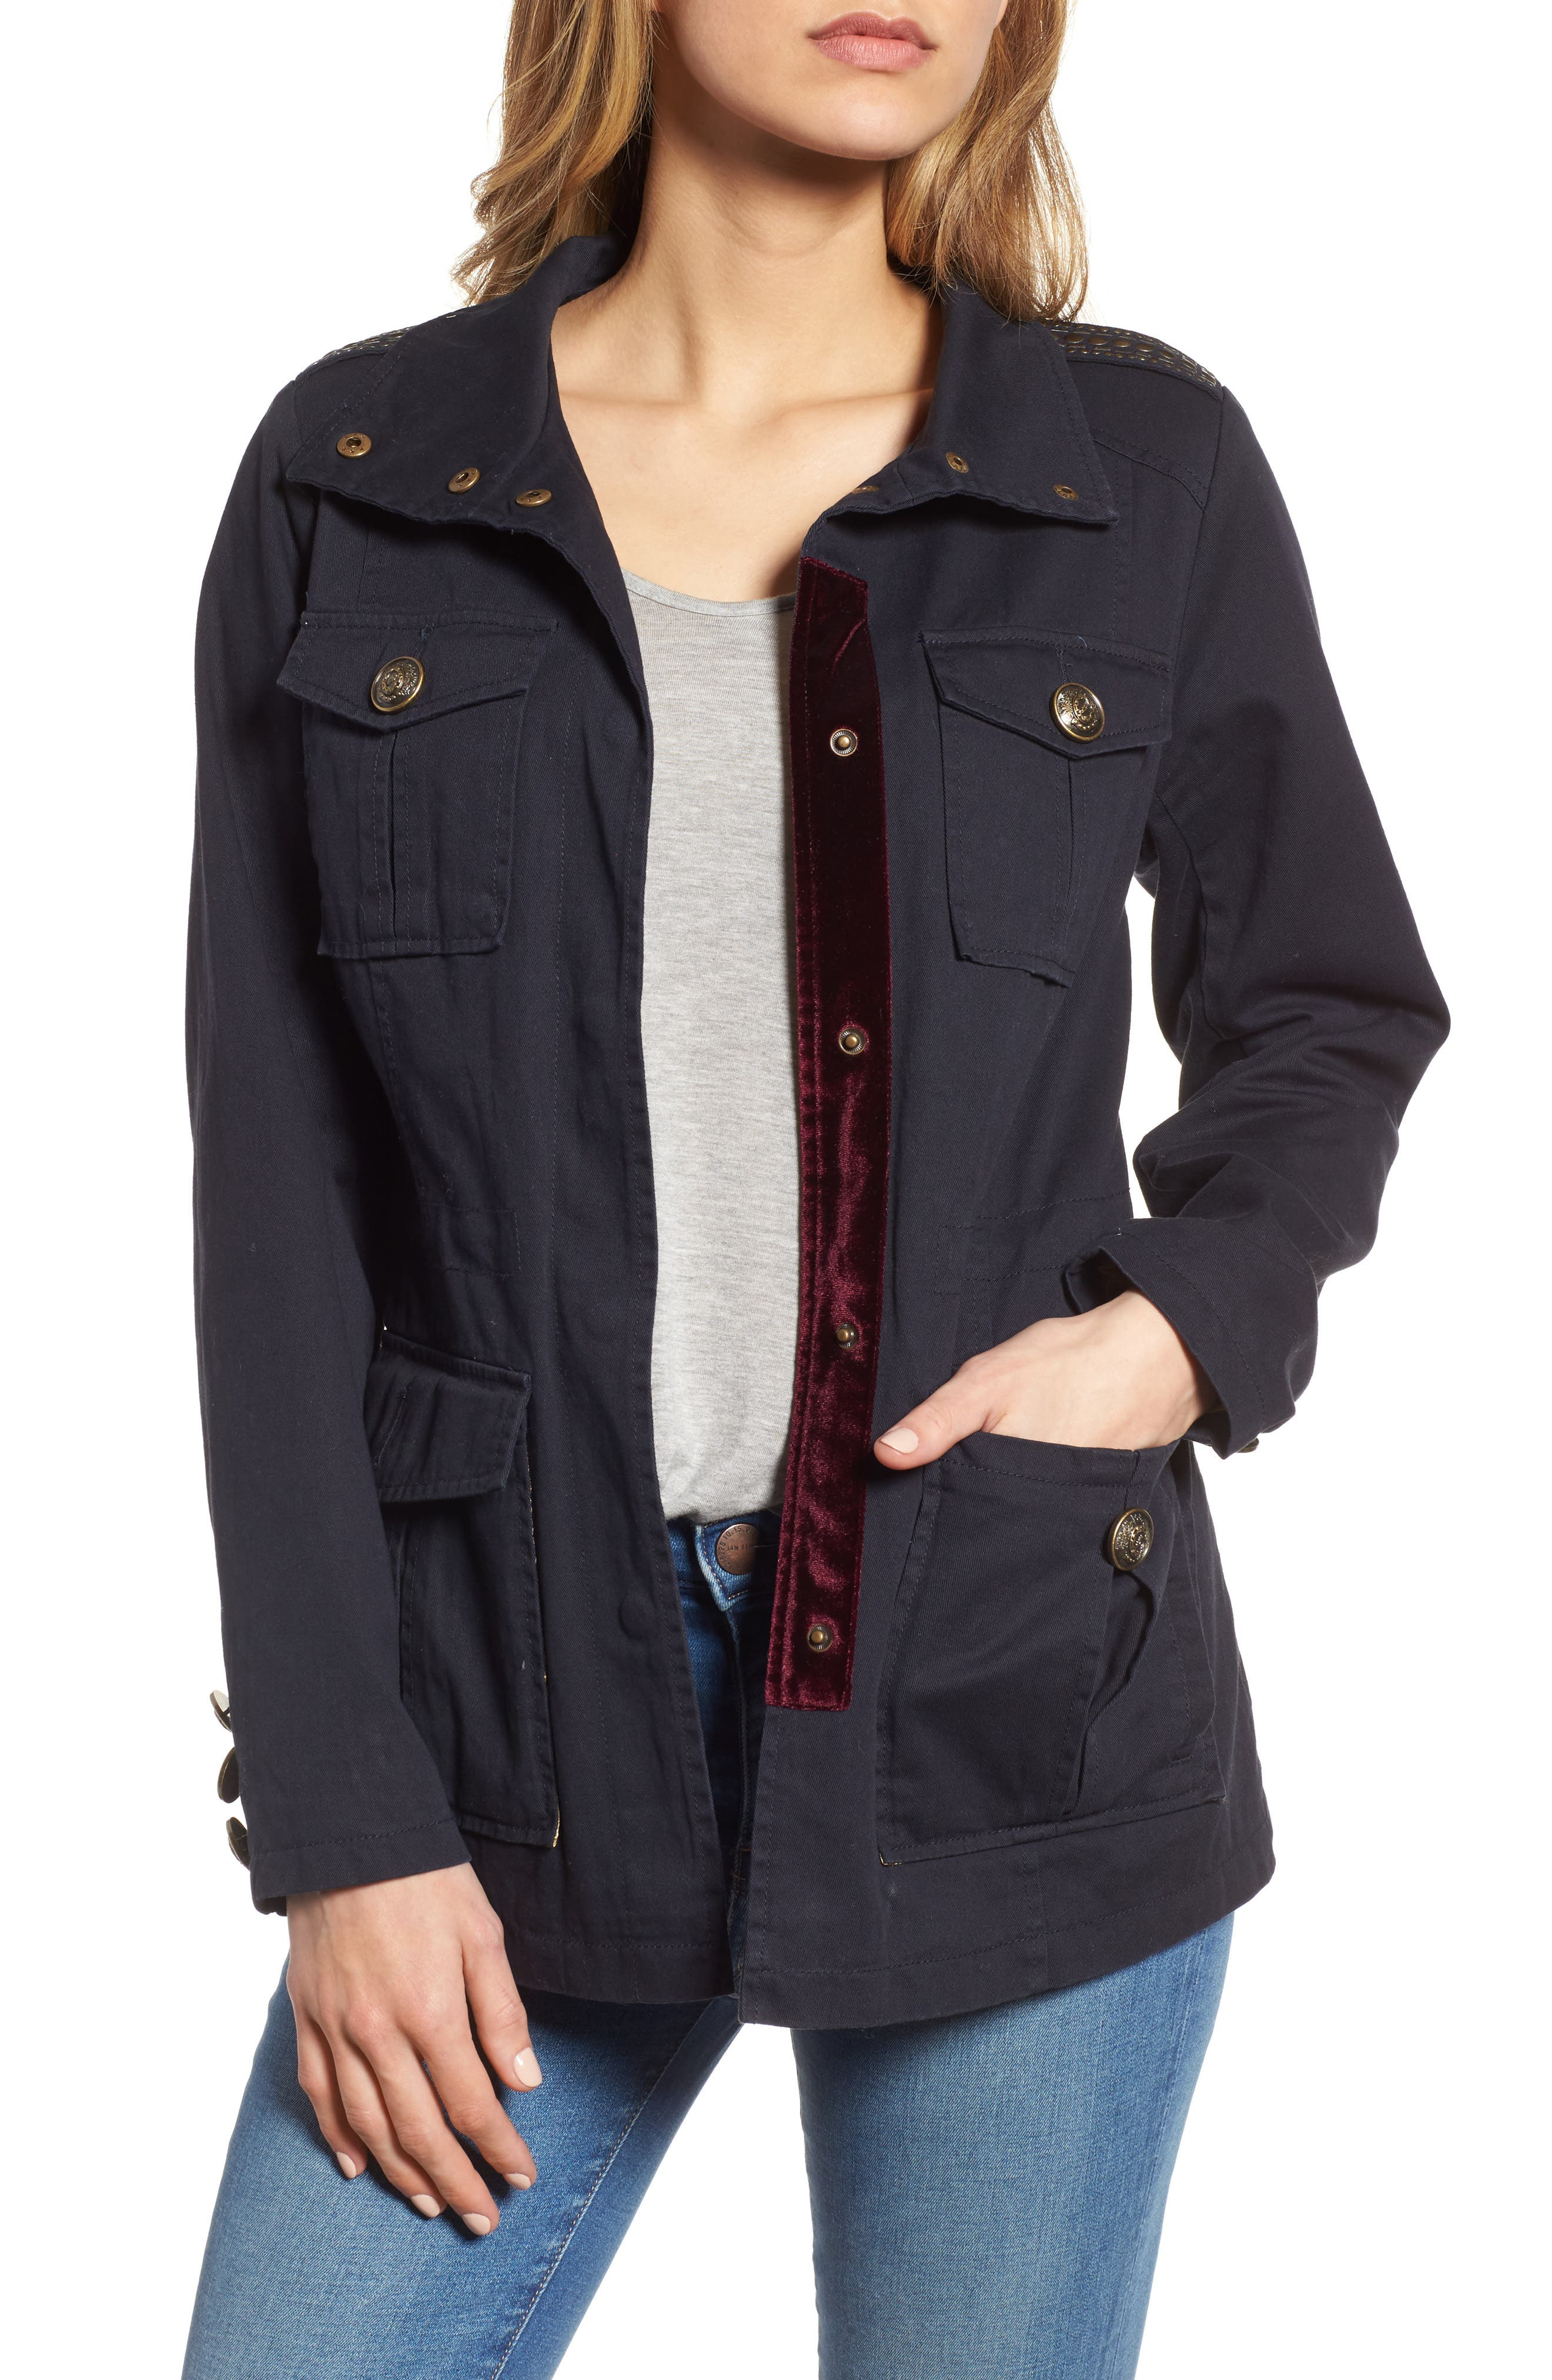 Alternate Image 1 Selected - Steve Madden Embellished Utility Jacket